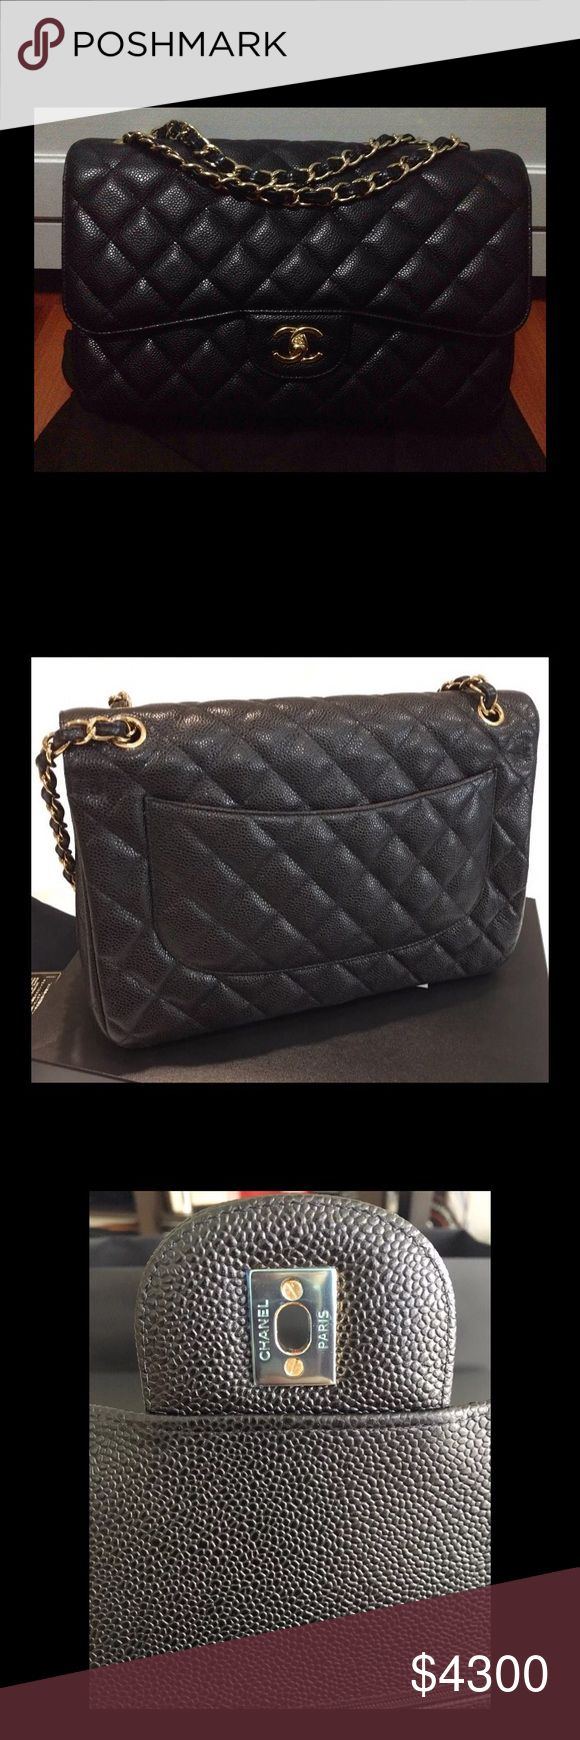 CHANEL JUMBO CAVIAR DOUBLE FLAP BAG WITH GHW CHANEL JUMBO CAVIAR DOUBLE FLAP BAG WITH GHW   BAG IS IN NEW CONDITION.  COMES WITH DUSTER, AUTHENTICITY CARD, AND BOX.   PLEASE, SERIOUS BUYERS ONLY!!!   ***PRICE ON POSH IS FIRM*** ***NO TRADES*** CHANEL Bags Shoulder Bags